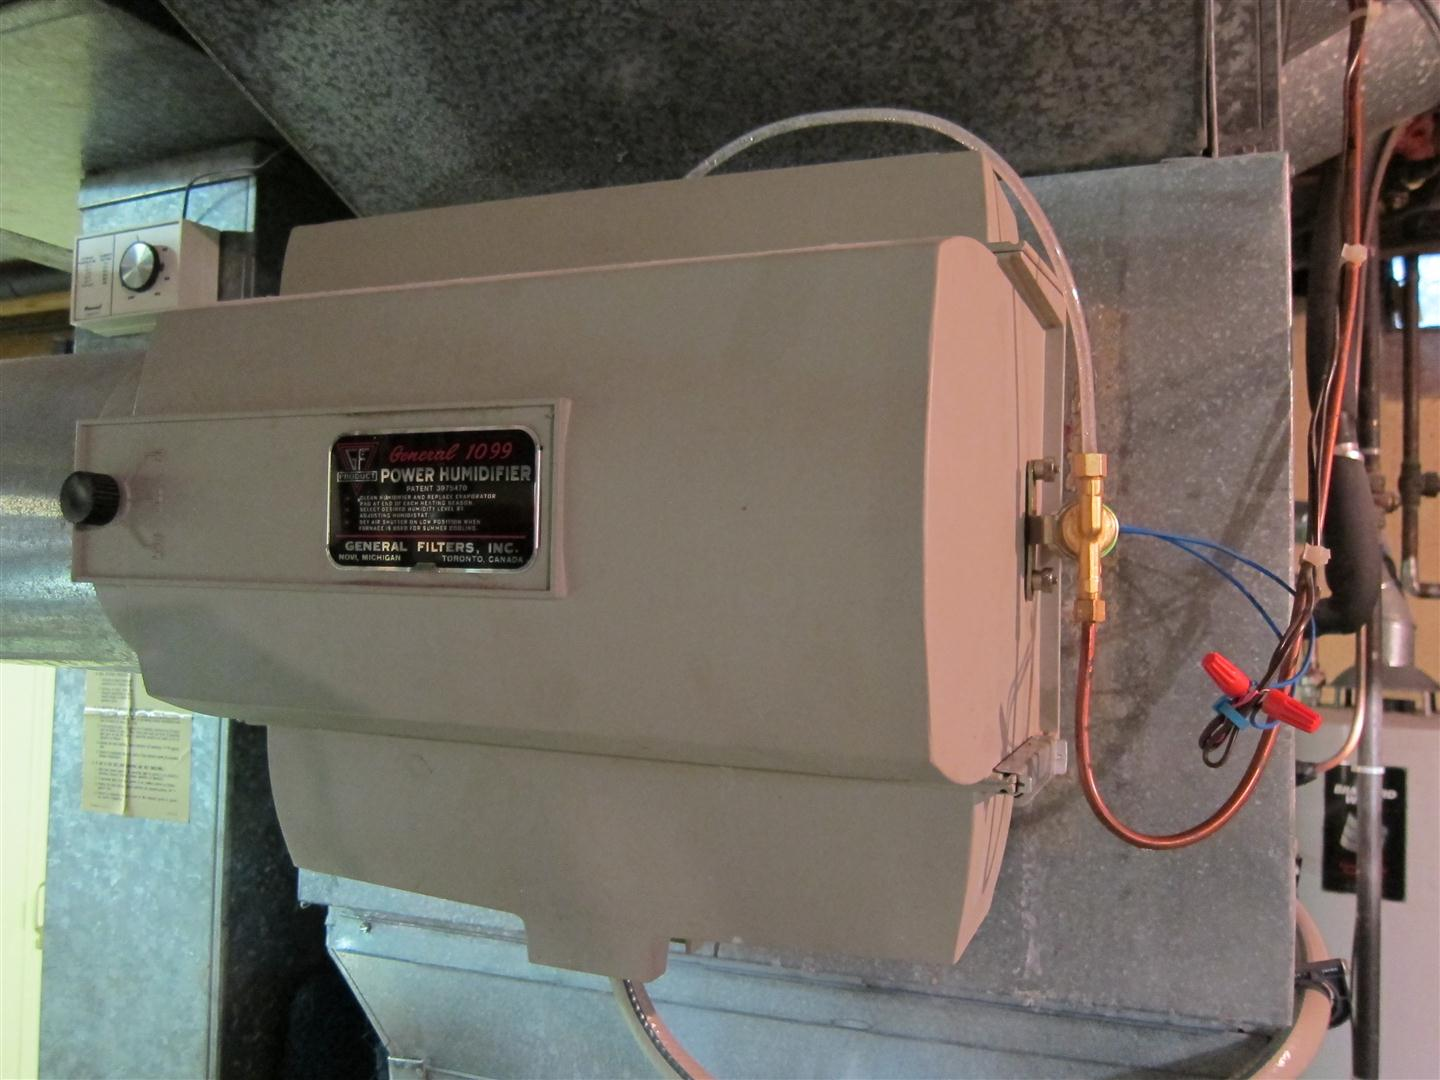 Furnace Humidifier | DUI attorney